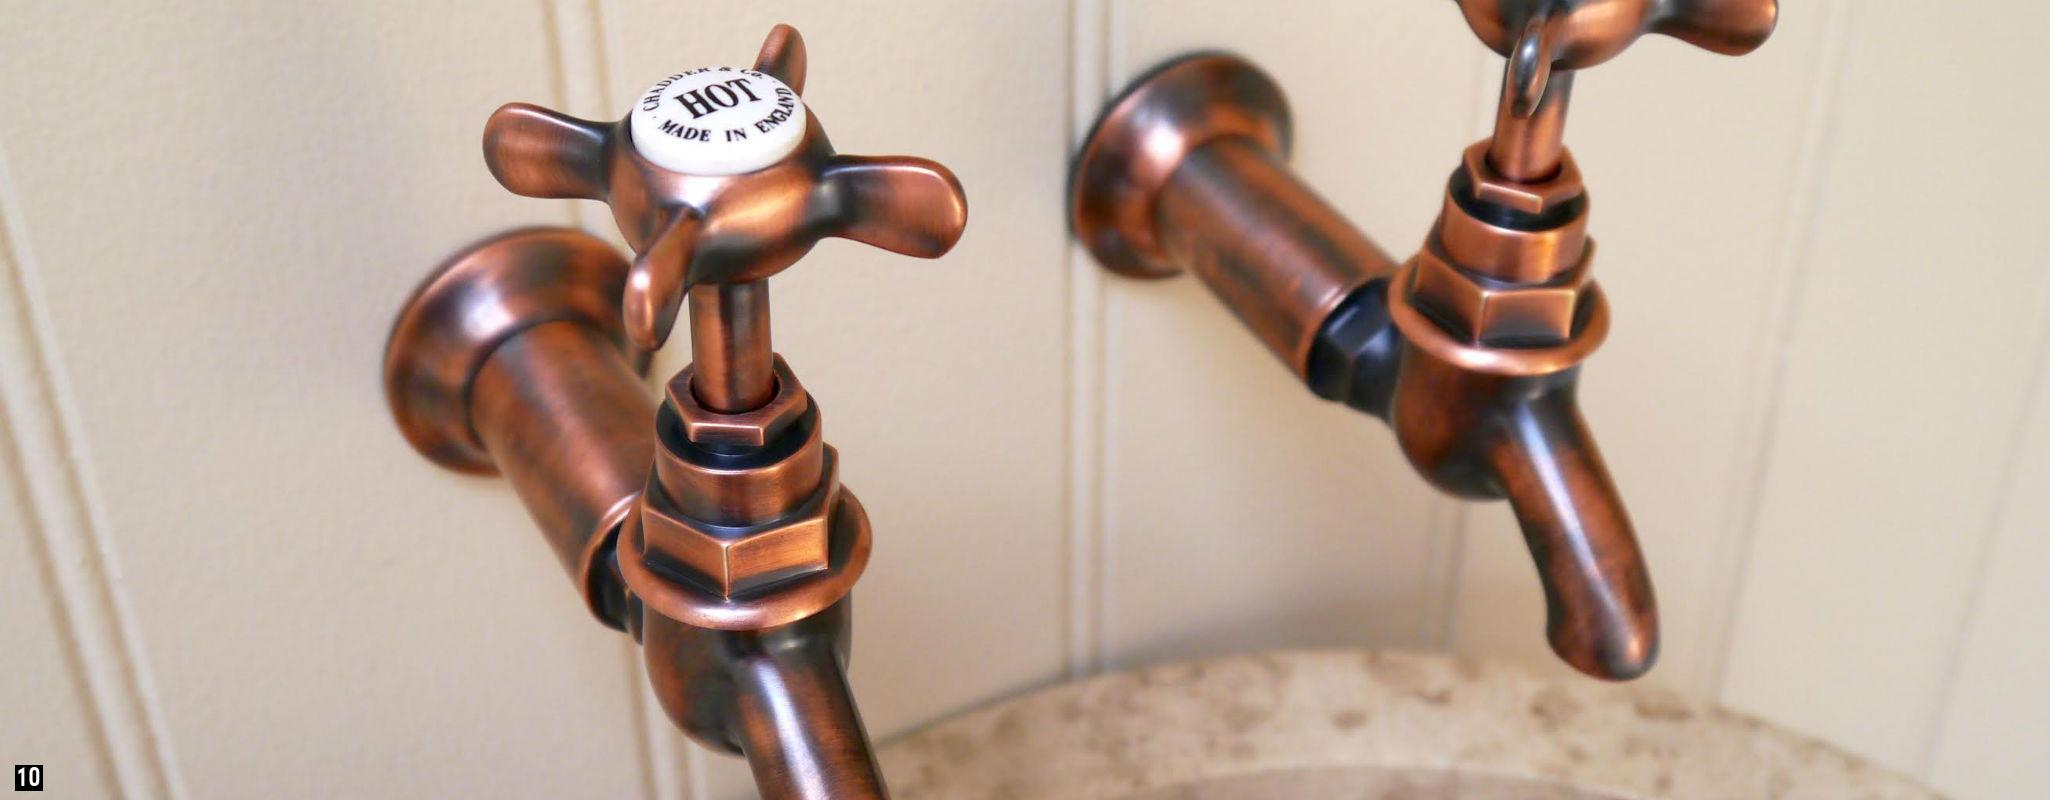 Weathered Copper Bib Taps , Copper Kitchen Taps , Bib Taps